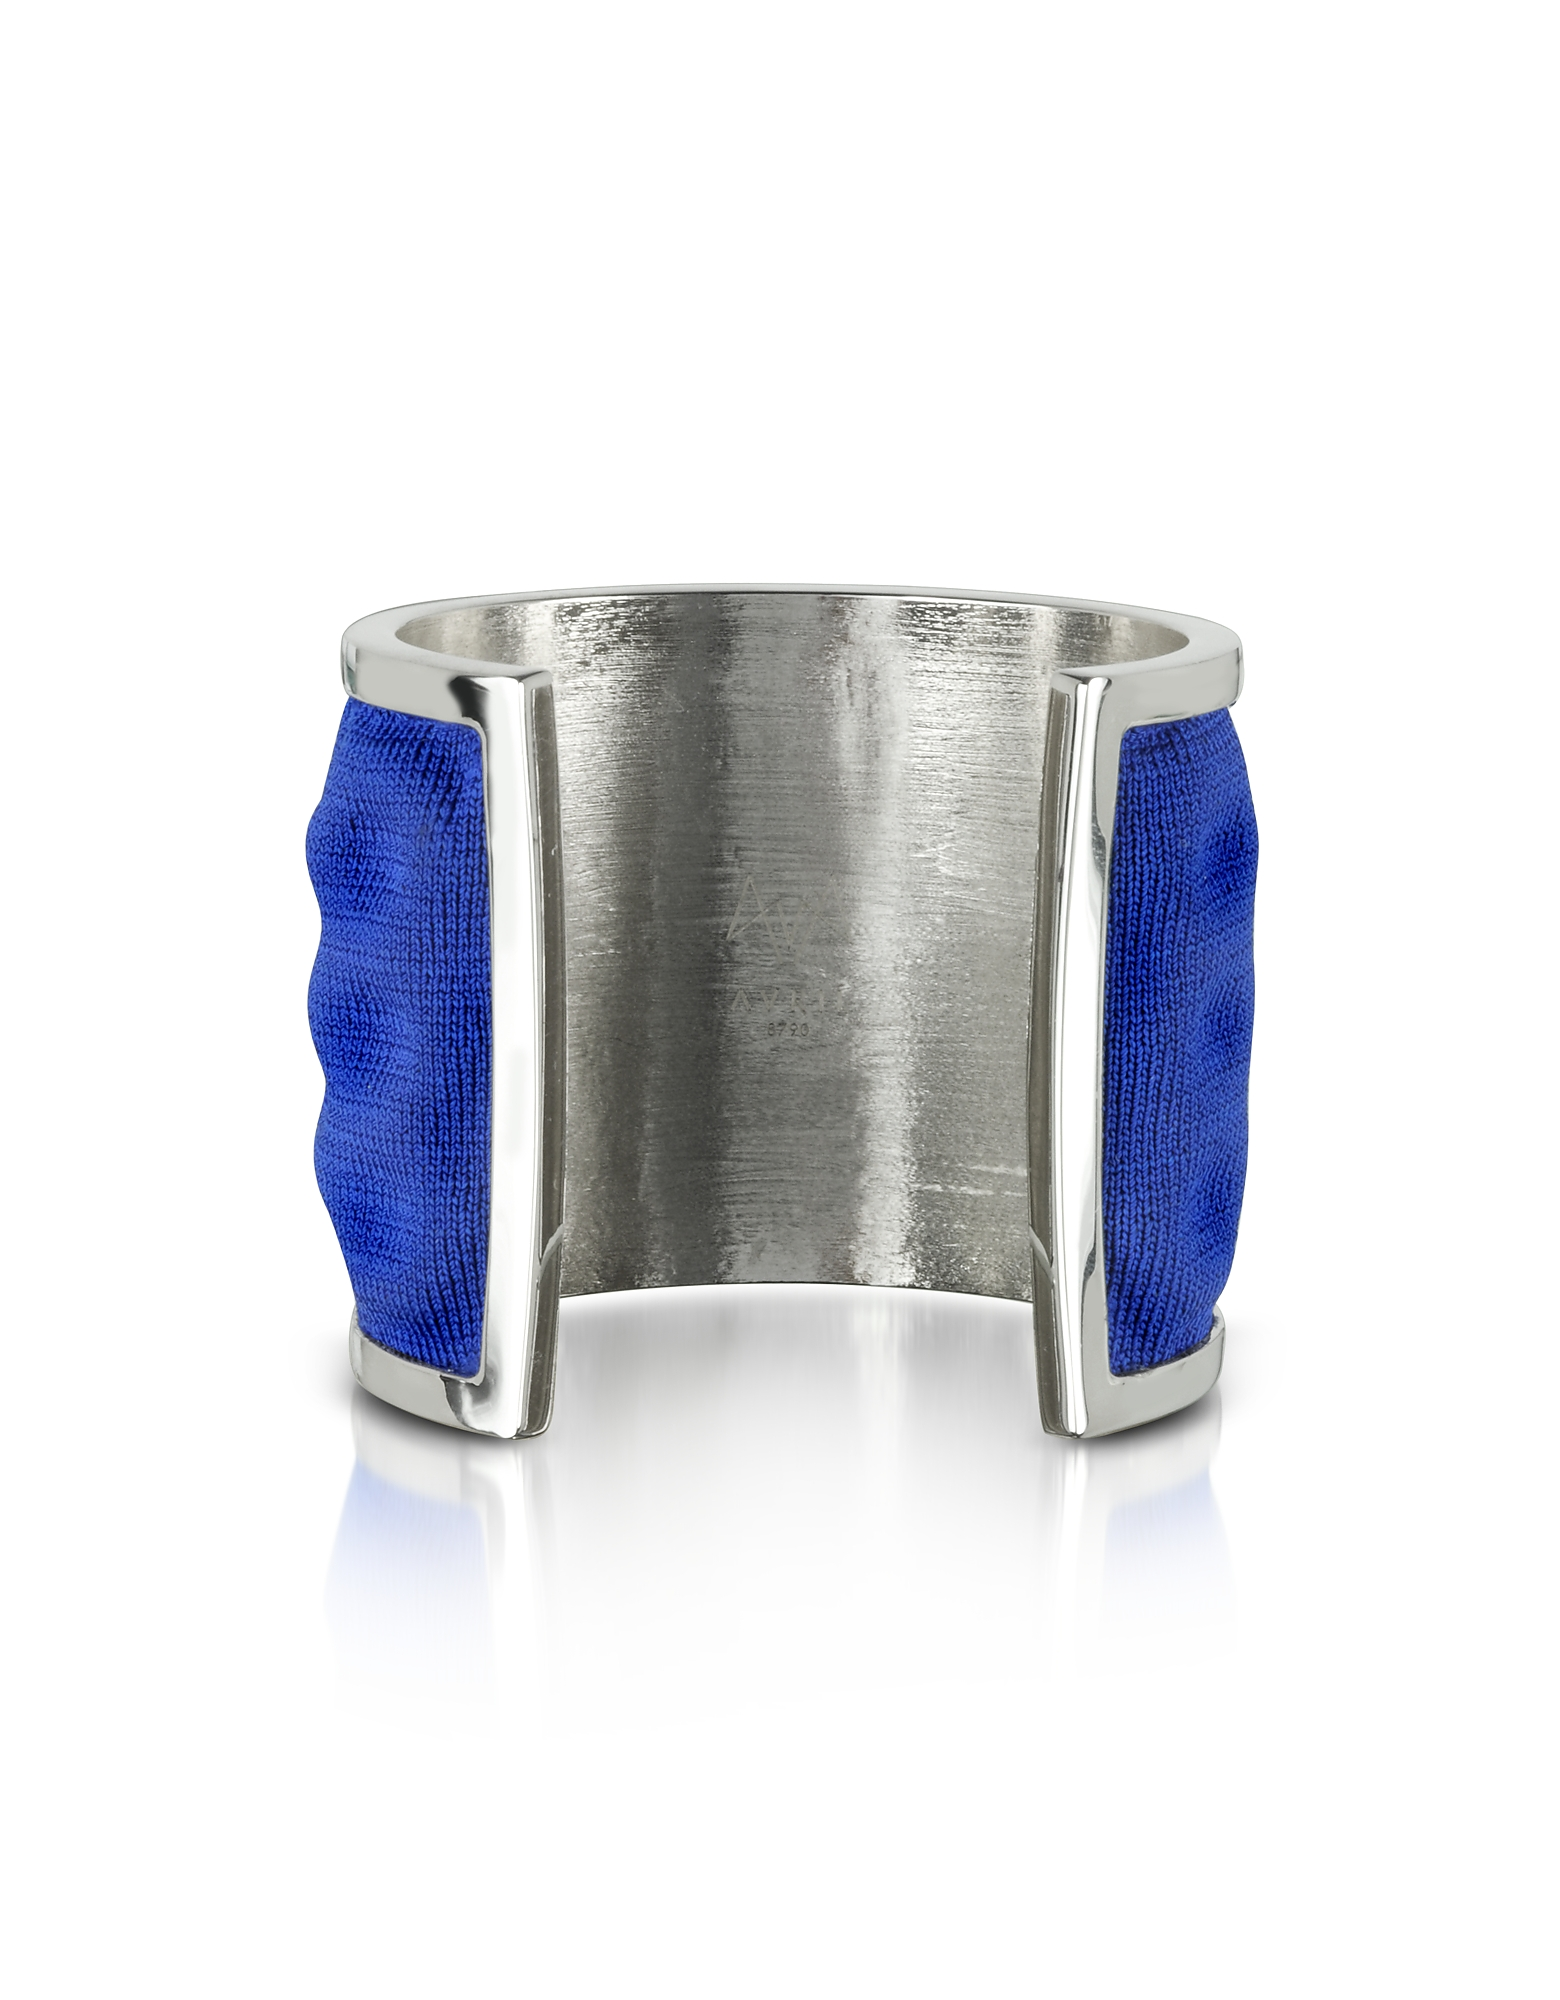 Avril 8790 Bracelets, Palladium Plated Brass and Electric Blue Viscose Bangle